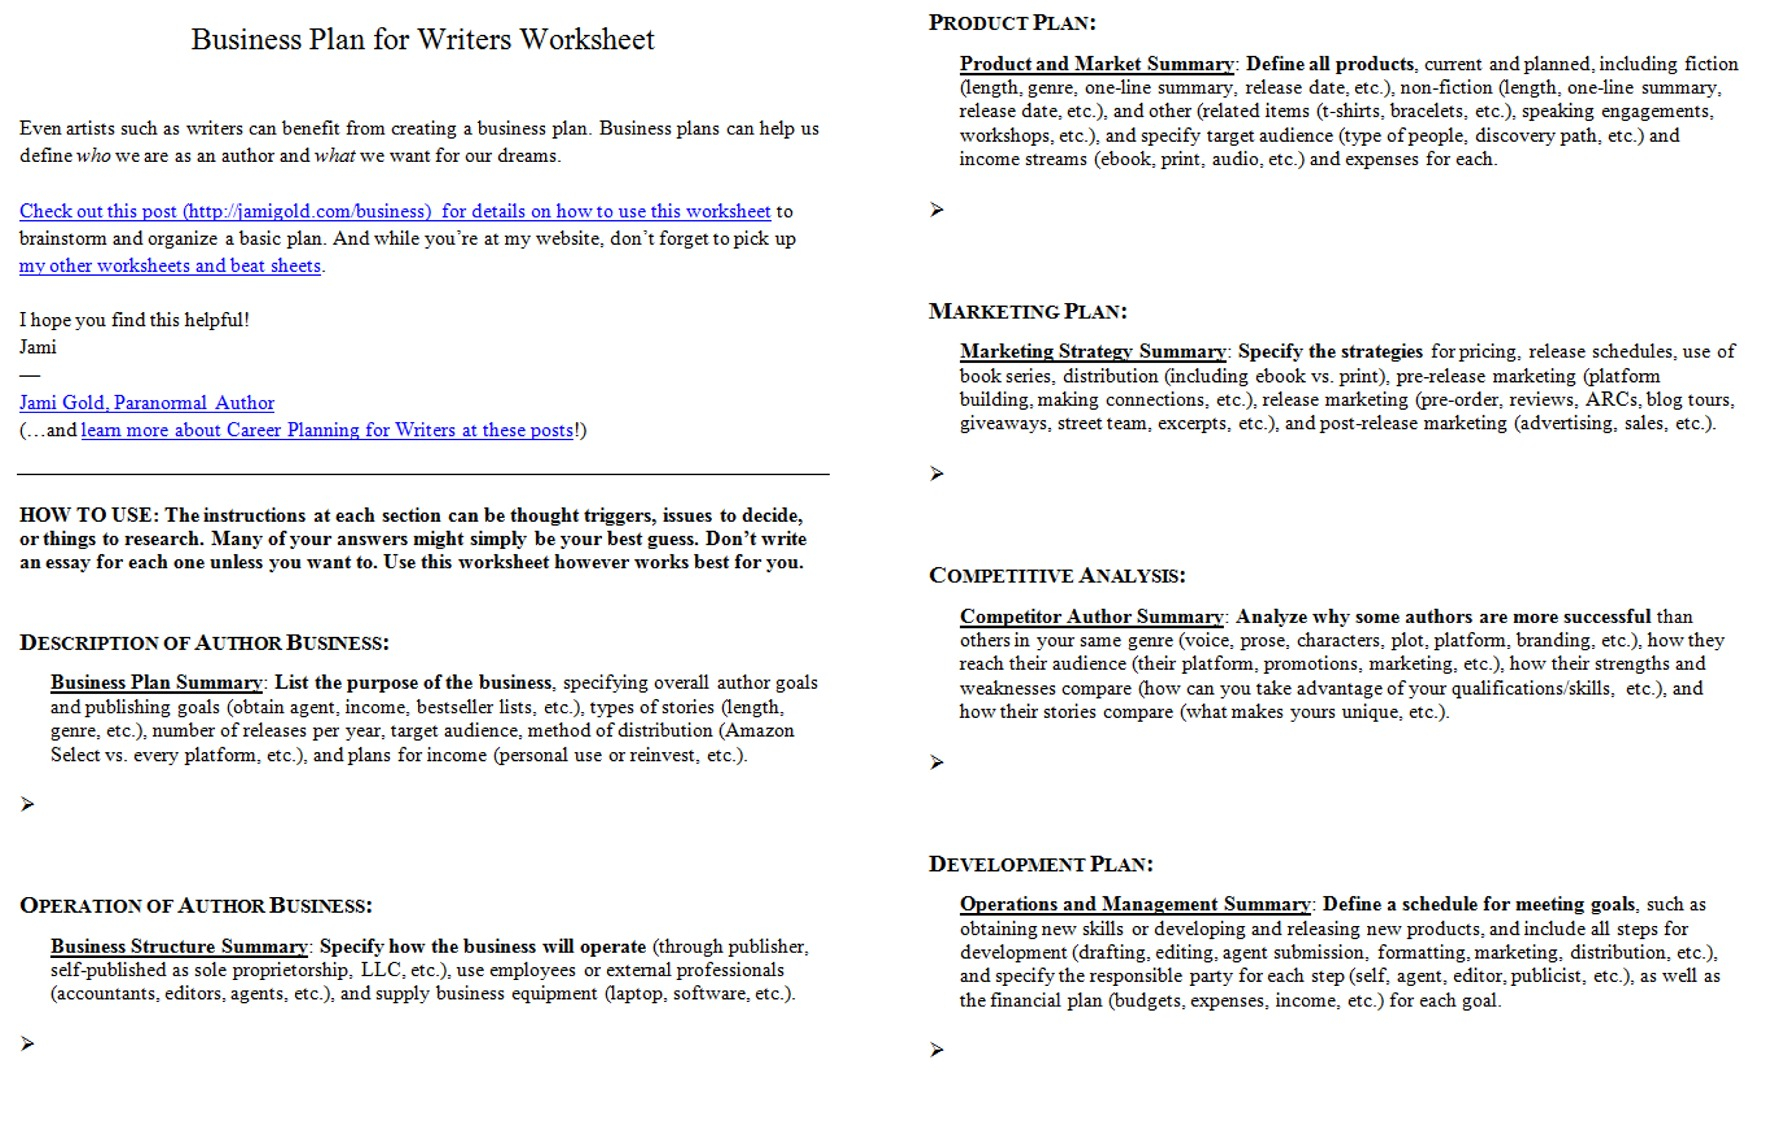 Proatmealus  Wonderful Worksheets For Writers  Jami Gold Paranormal Author With Lovable Screen Shot Of Both Pages Of The Business Plan For Writers Worksheet With Charming Simplifying Exponents Worksheet Pdf Also Create A Tracing Worksheet In Addition Worksheets On Rounding And Alcohol Abuse Worksheets As Well As Tracing Numbers  Worksheets Additionally Printable Cut And Paste Worksheets From Jamigoldcom With Proatmealus  Lovable Worksheets For Writers  Jami Gold Paranormal Author With Charming Screen Shot Of Both Pages Of The Business Plan For Writers Worksheet And Wonderful Simplifying Exponents Worksheet Pdf Also Create A Tracing Worksheet In Addition Worksheets On Rounding From Jamigoldcom